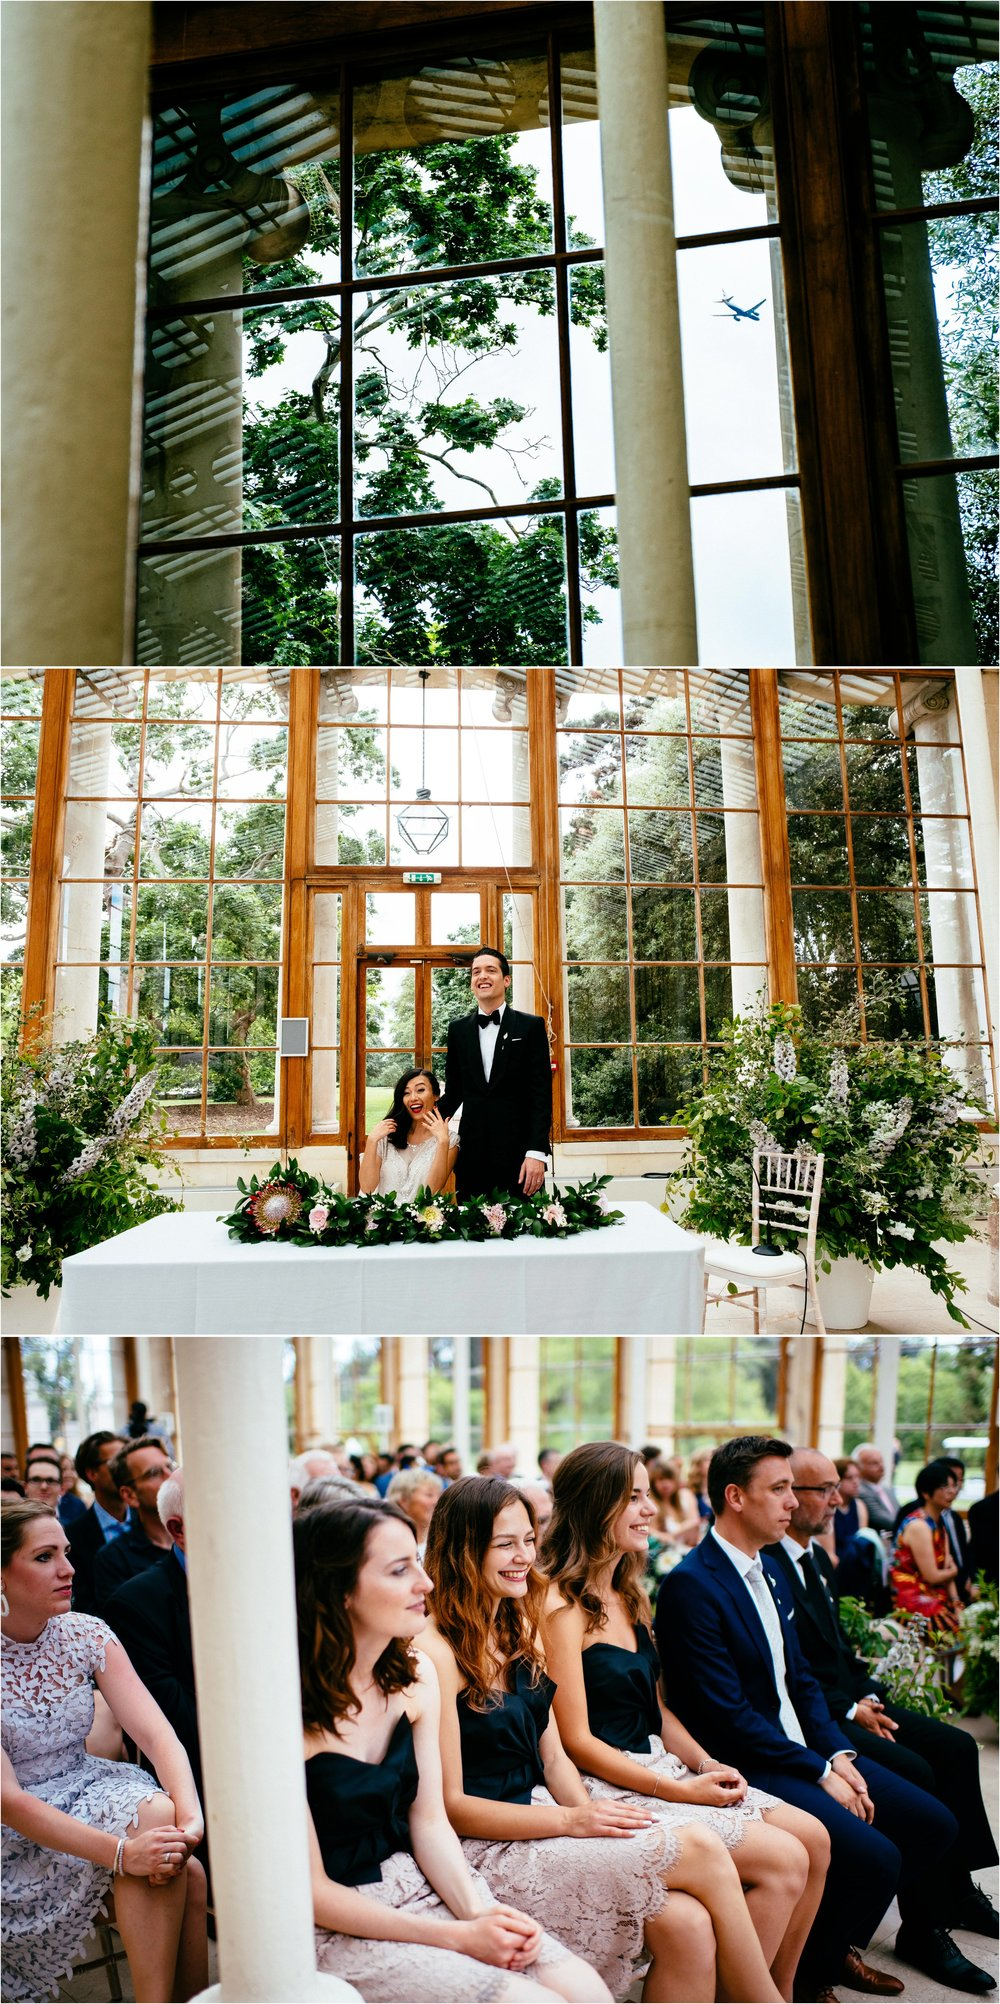 Kew Garden wedding photographer_0161.jpg